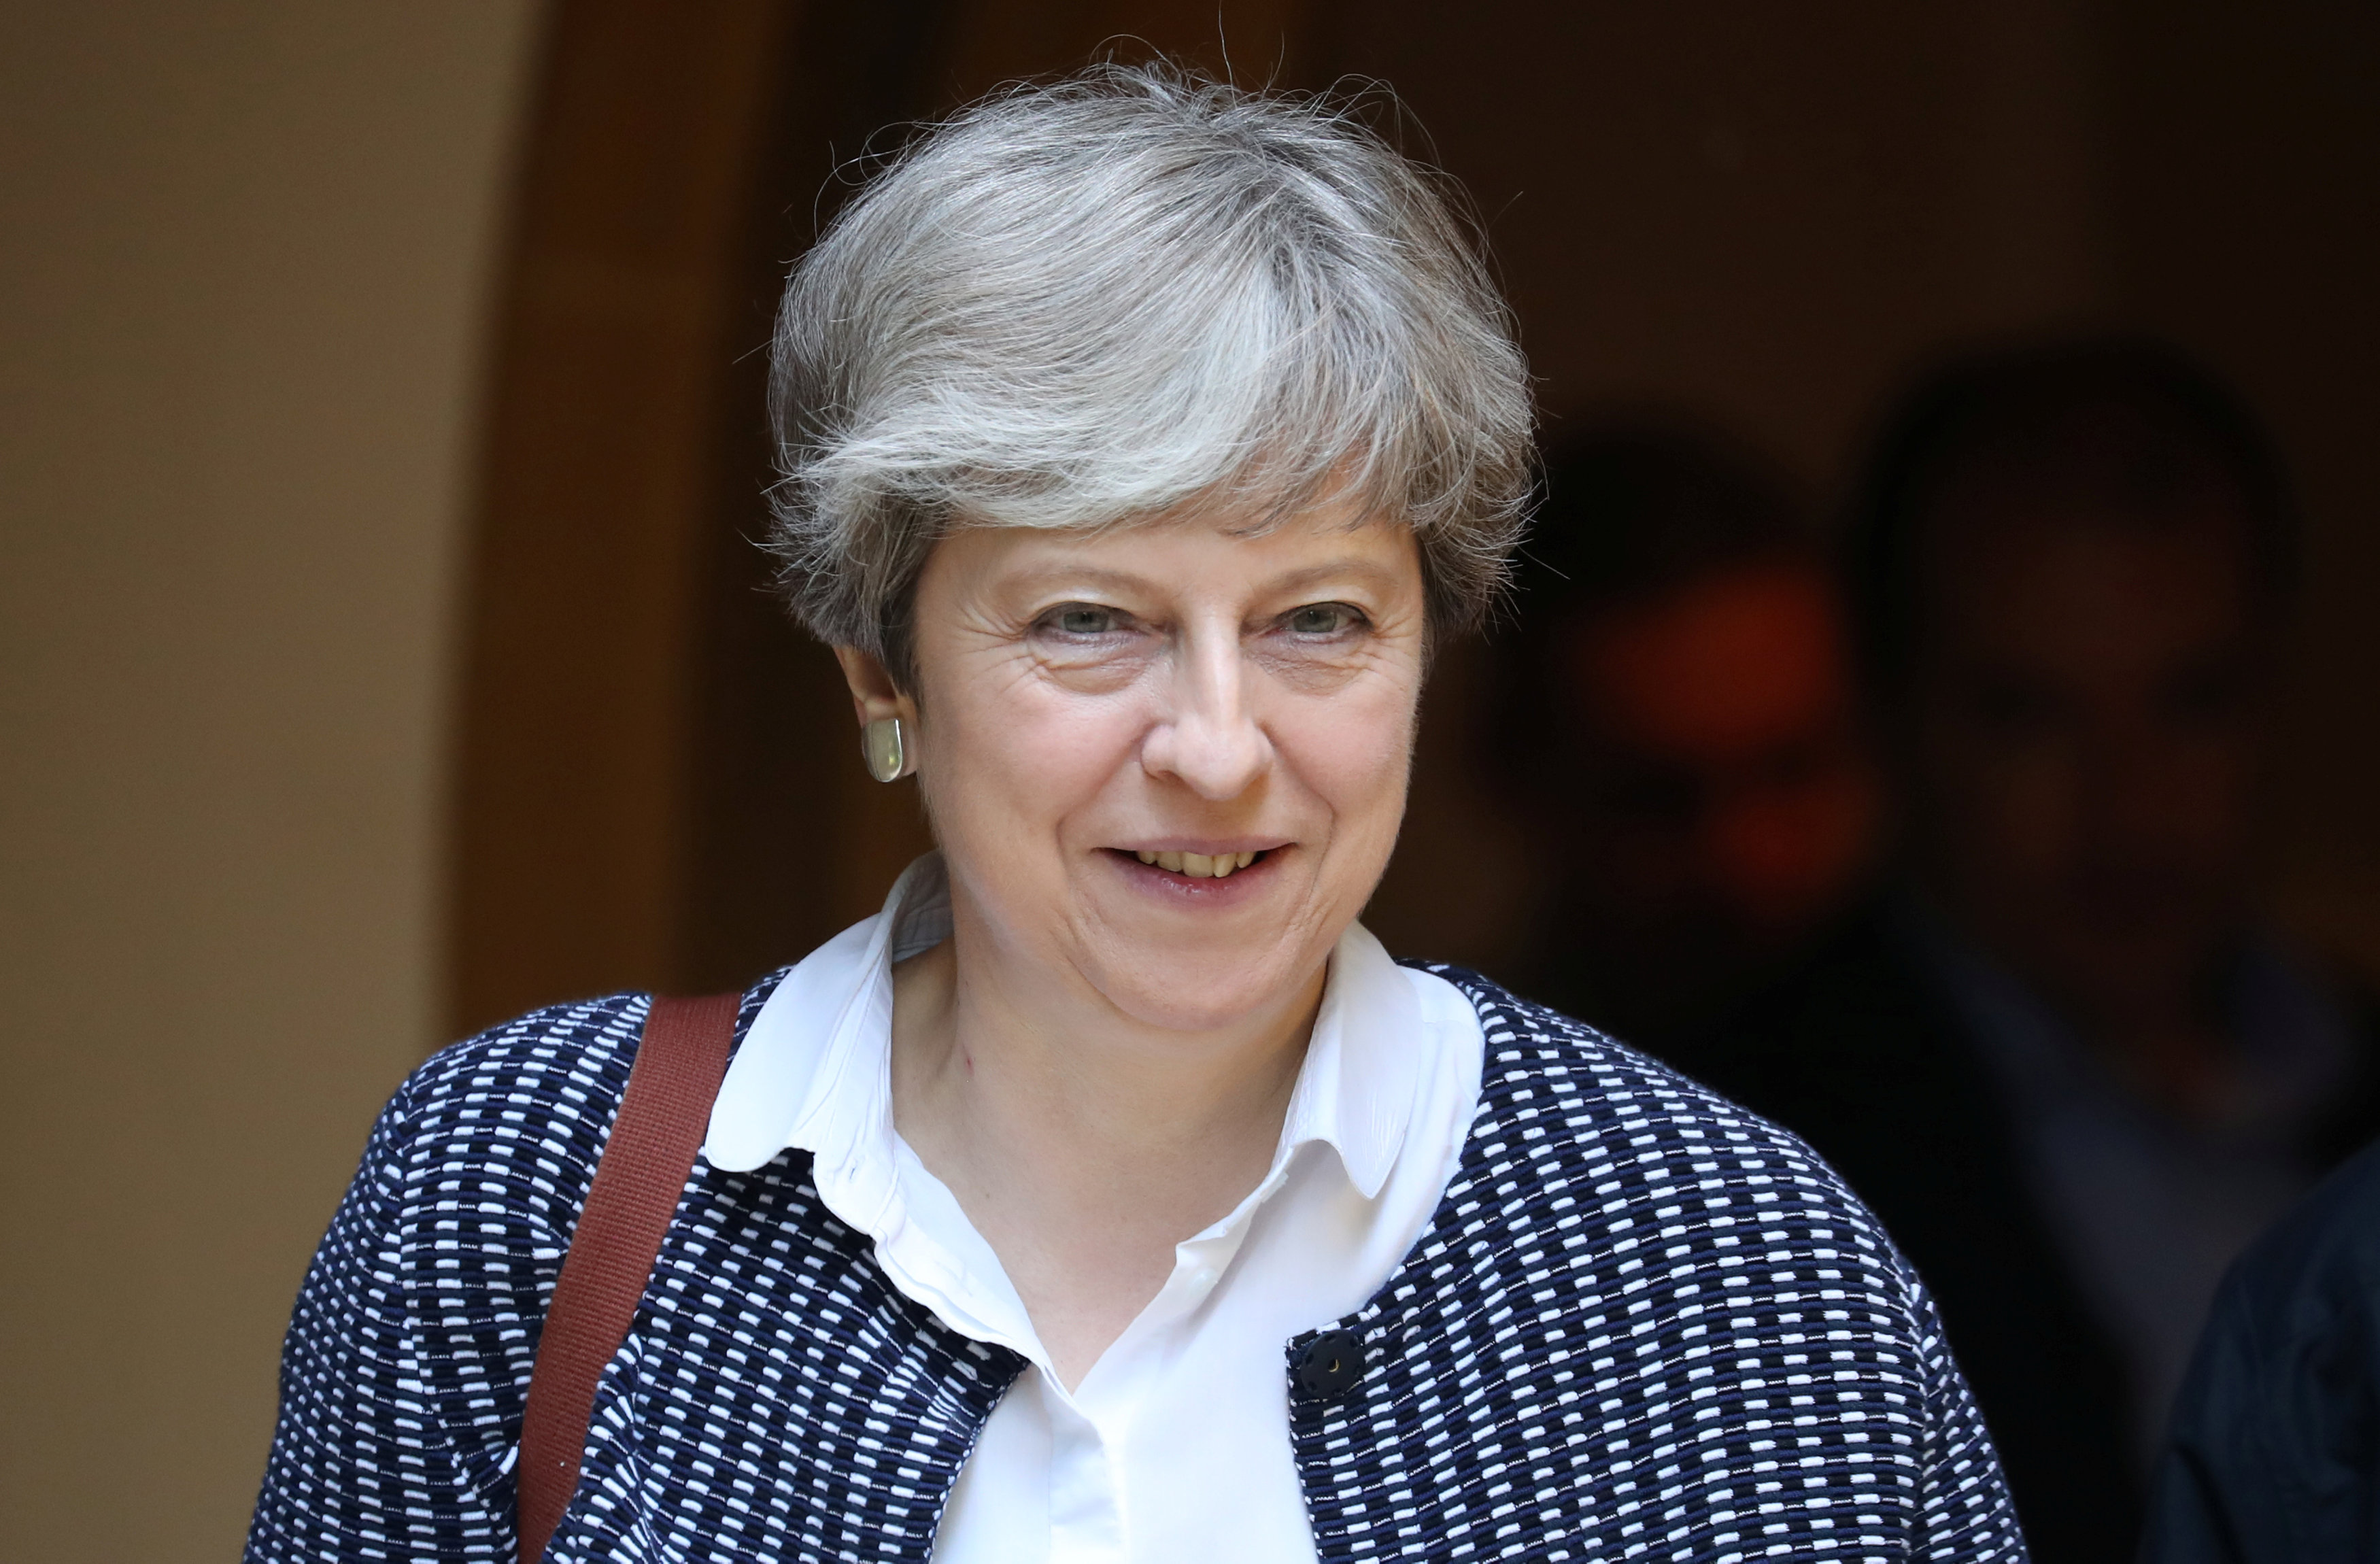 After fire, May's government vows to protect Britons